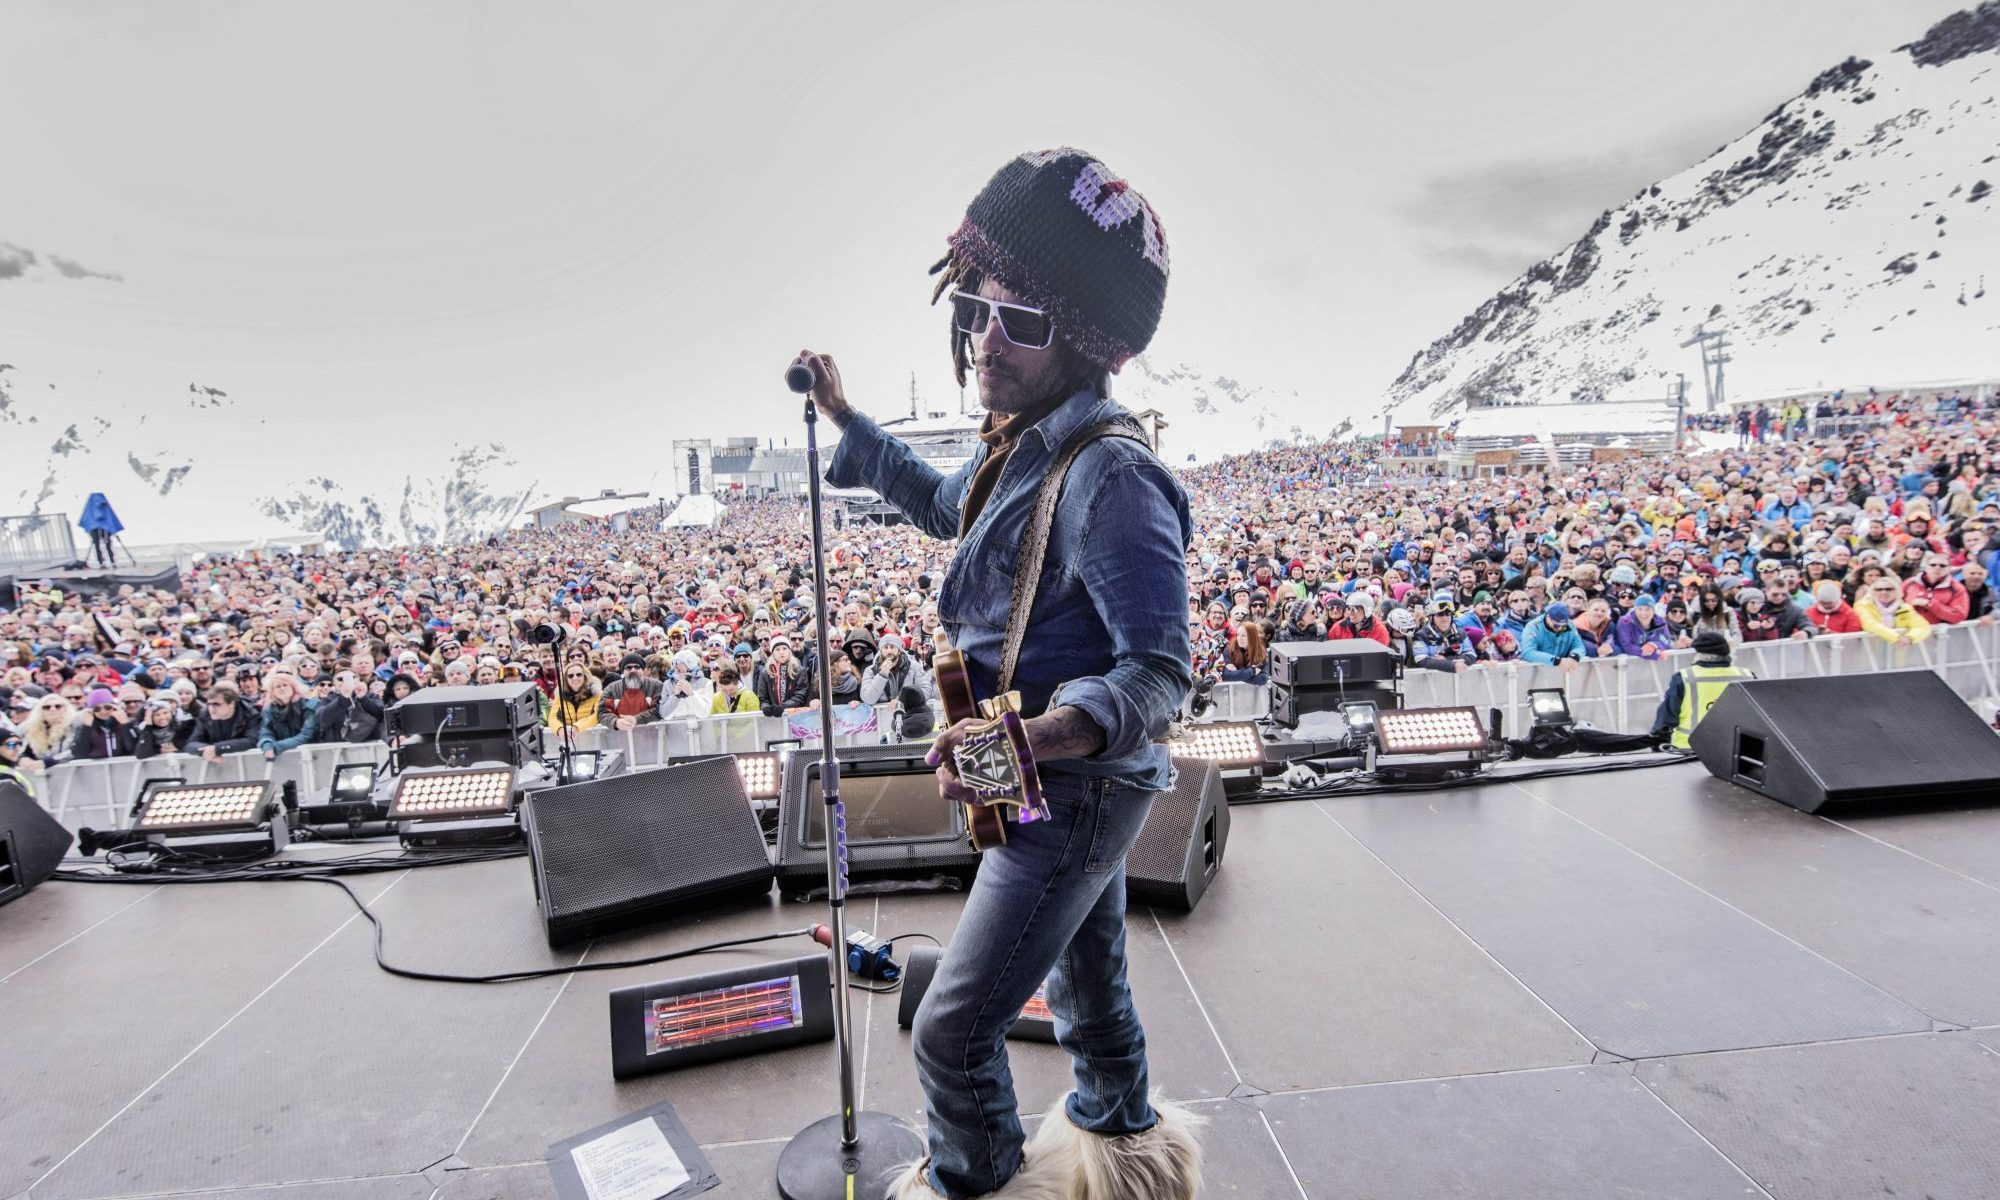 Lenny Kravitz closes the ski season at Ischgl. Photo: TVB Paznaun Ischgl. Ischgl rocked with Lenny Kravitz for their season finale.